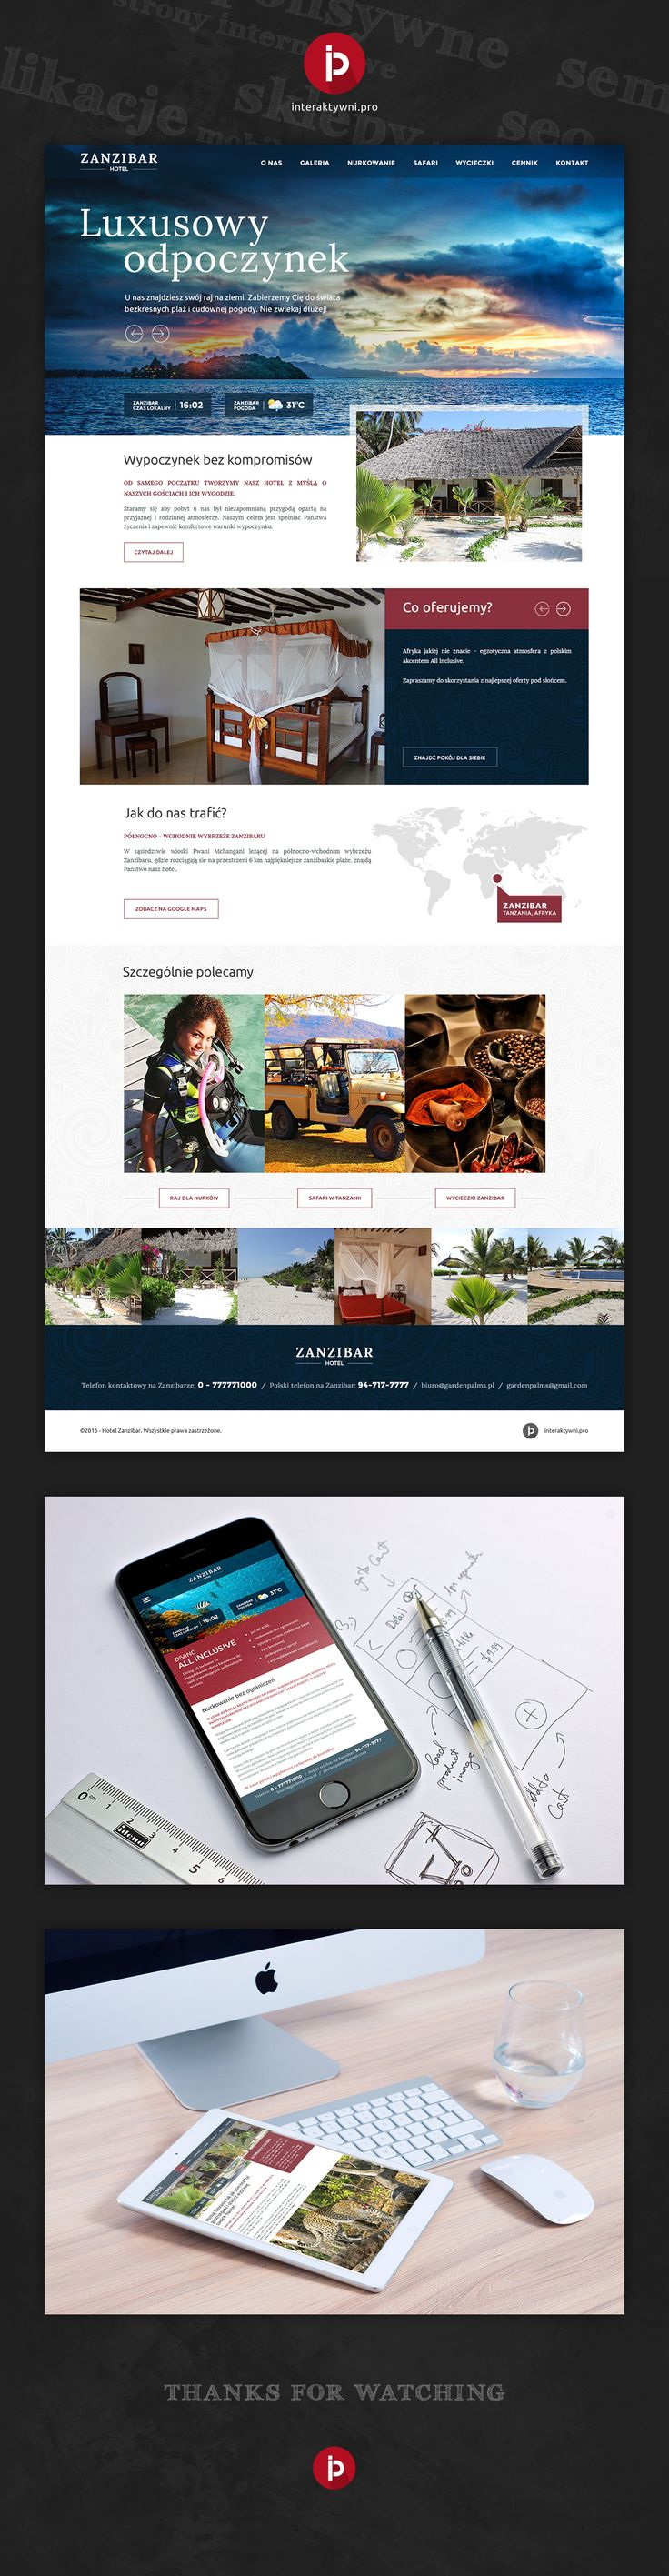 Poslki hotel na Zanzibarze - kompleksowa realizacja responsywnej strony internetowej w naszym wykonaniu. // Polish hotel on Zanzibar - our comprehensive realization of responsive website. #responsywnastronainternetowa #agencjainteraktywna #interaktywni